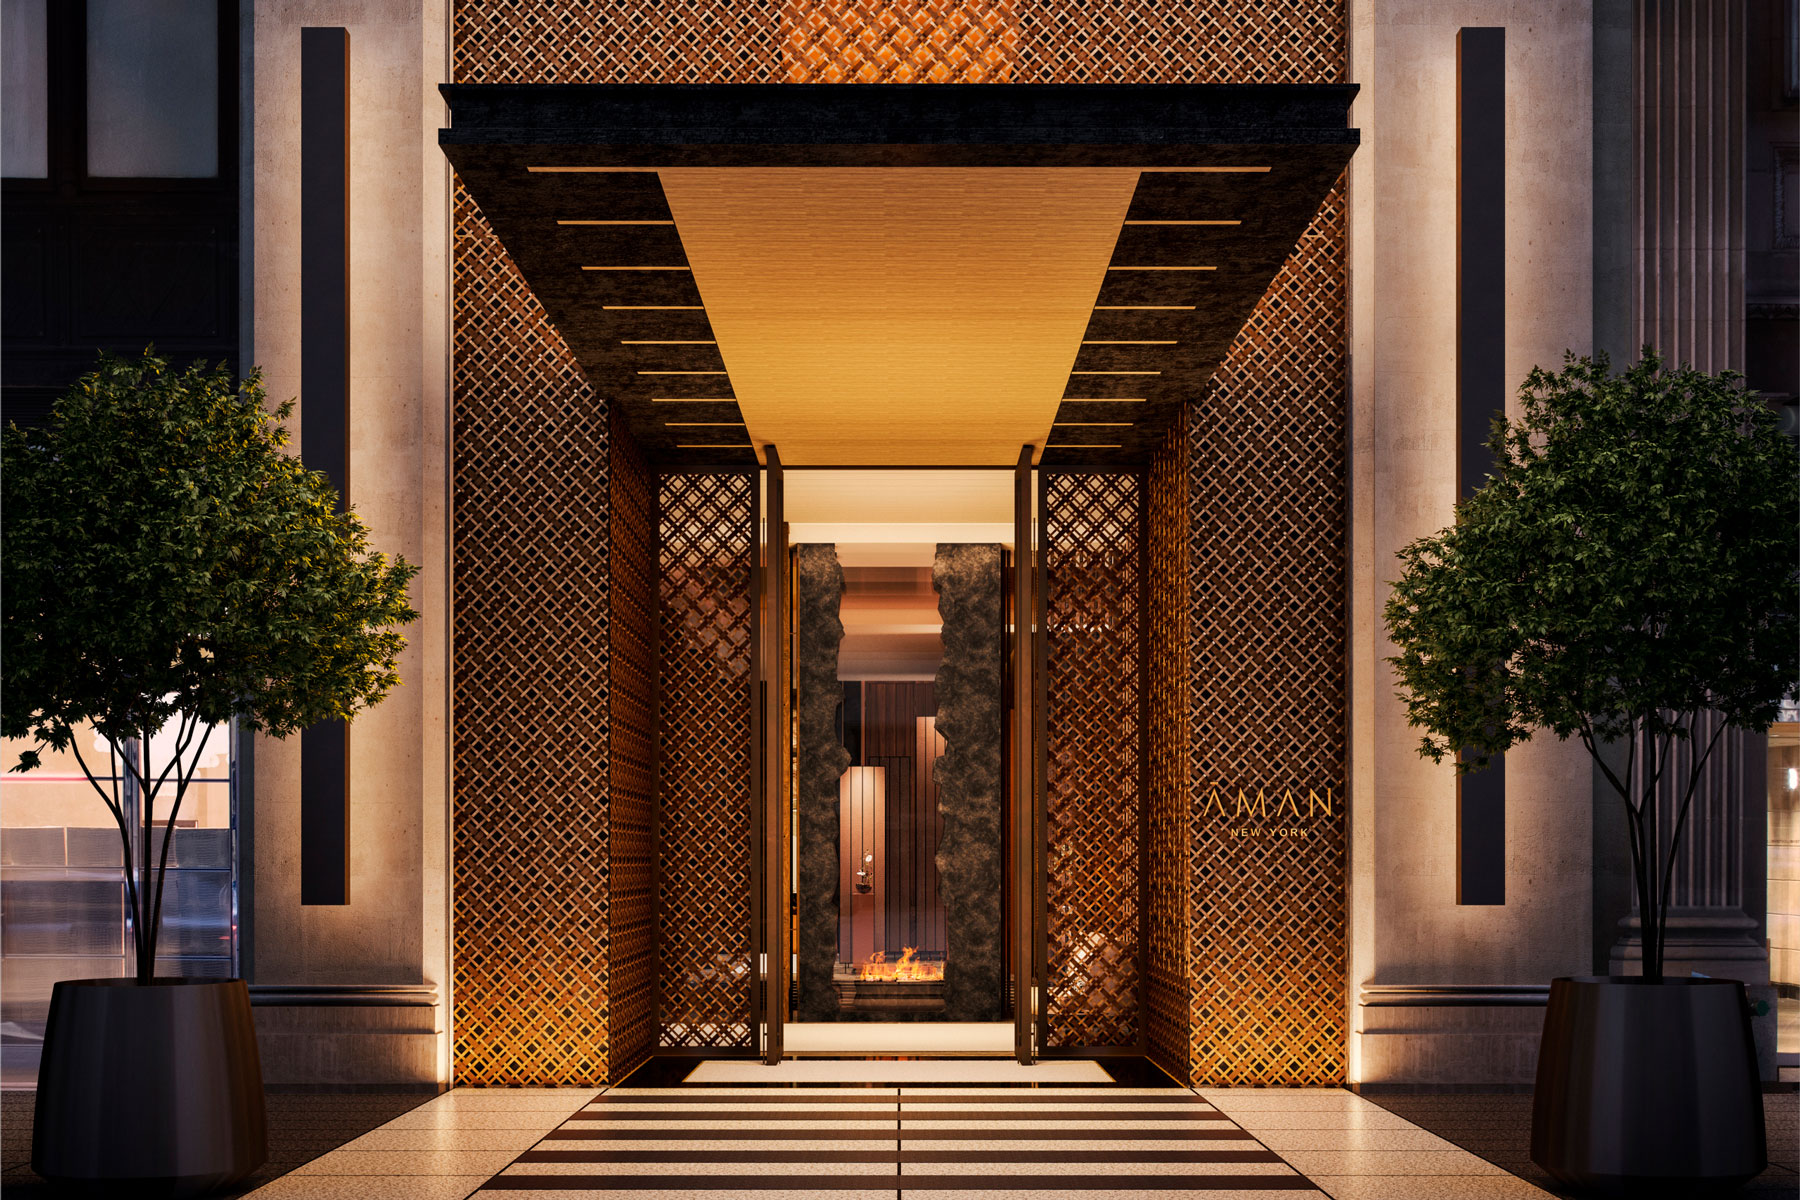 Aman New York Entrance